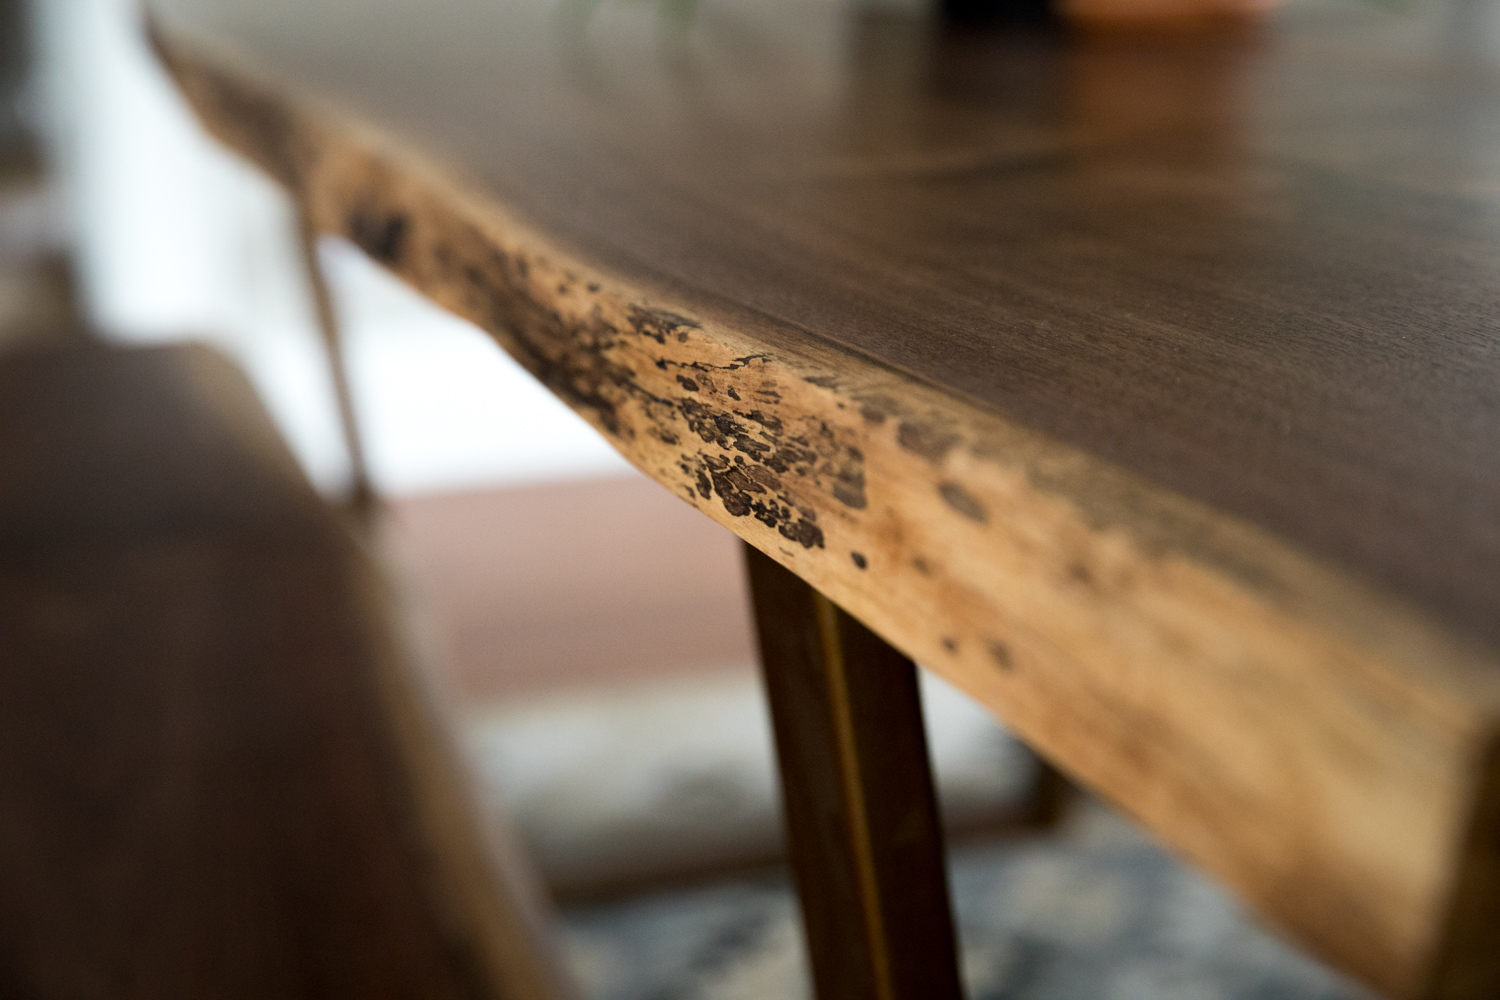 Big Tooth Co_Fort Wayne Indianapolis Woodworking _Walnut Dining Table (46 of 51).jpg